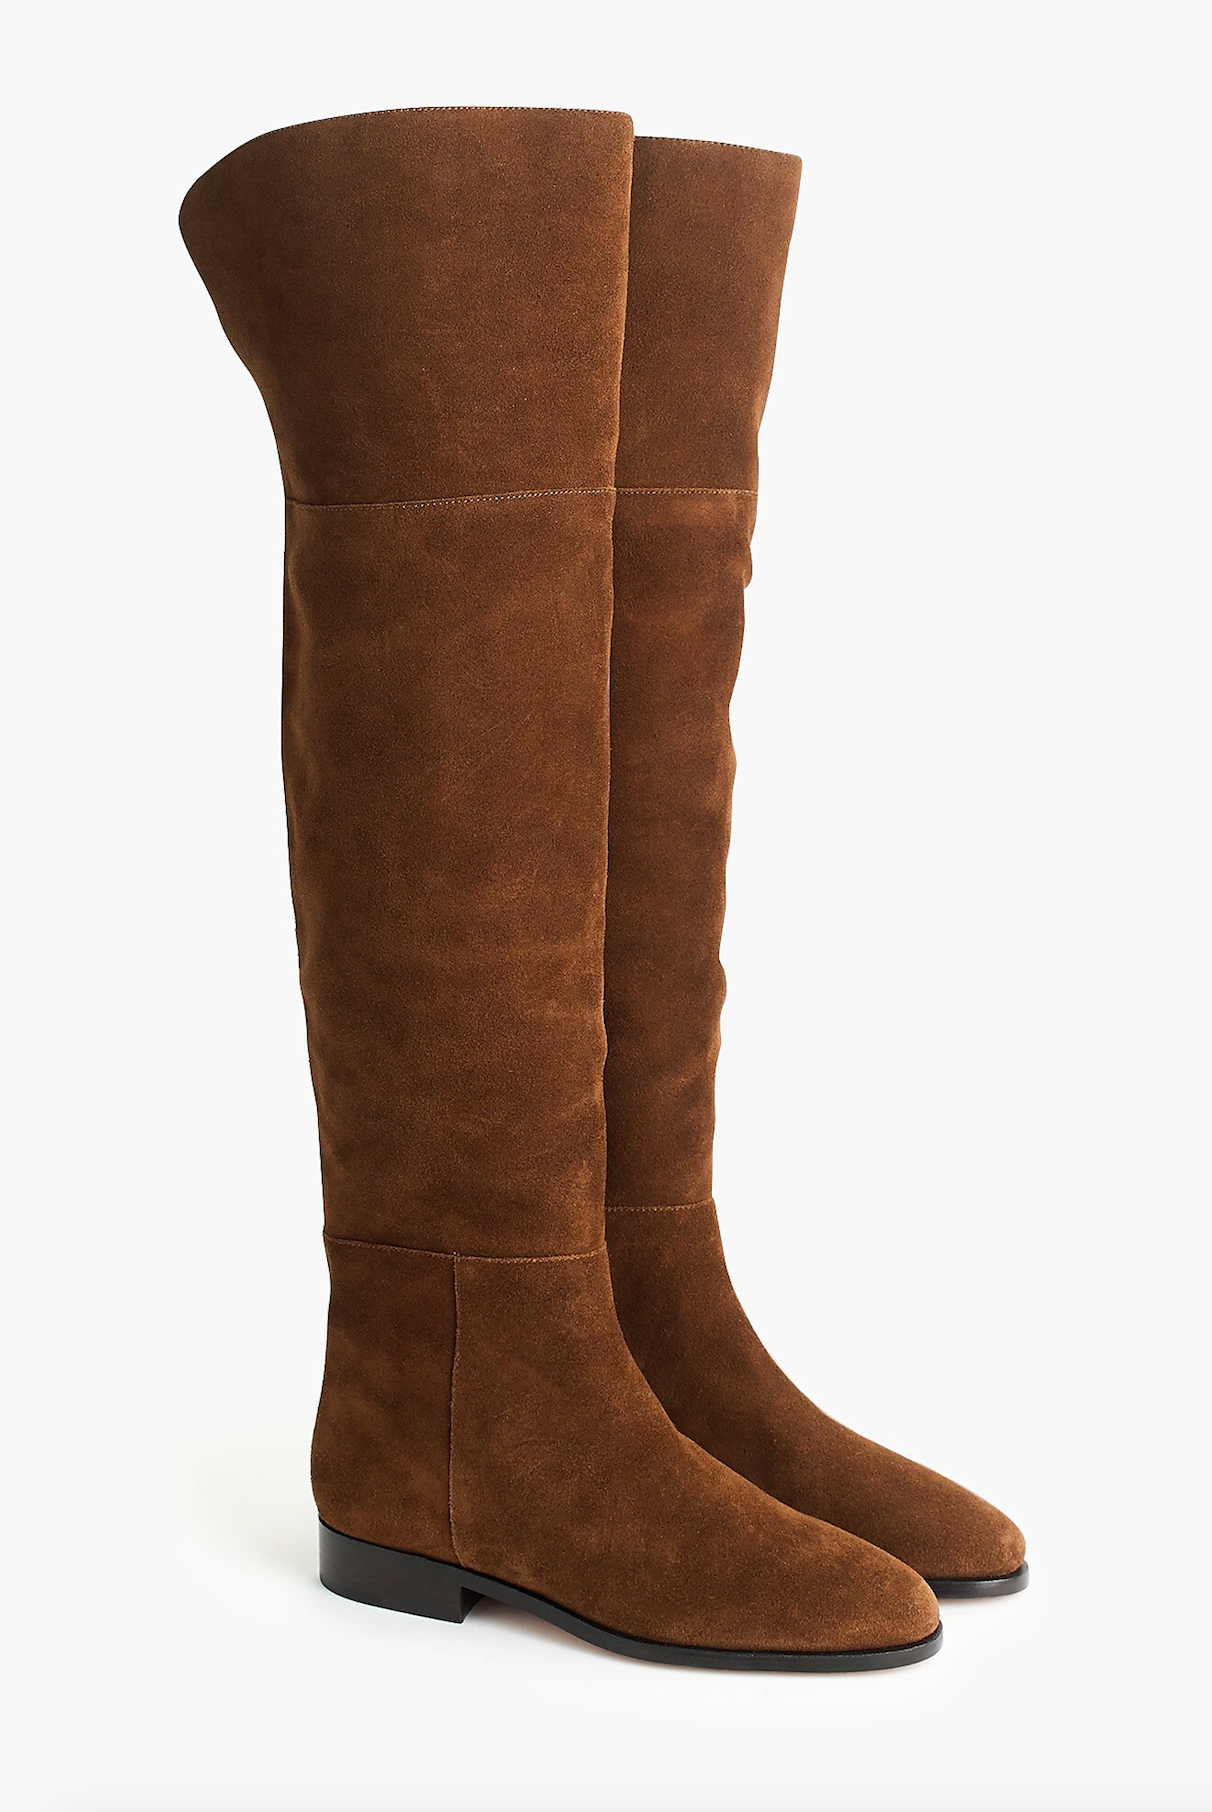 Brown Over the Knee Boots